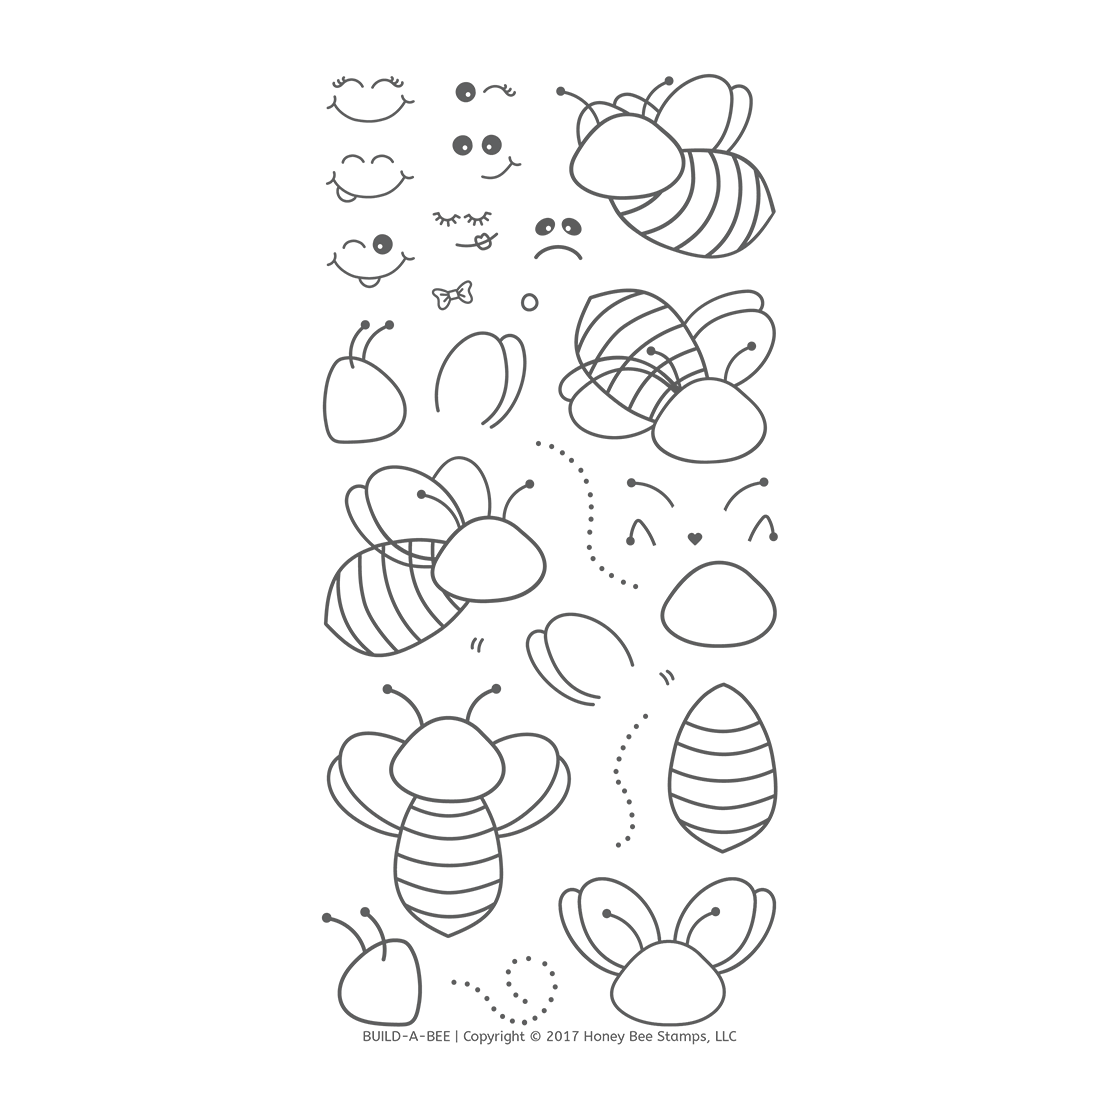 *PRE-ORDER* - Honeybee Bee Stamps - Build-A-Bee | 4x8 Stamp Set